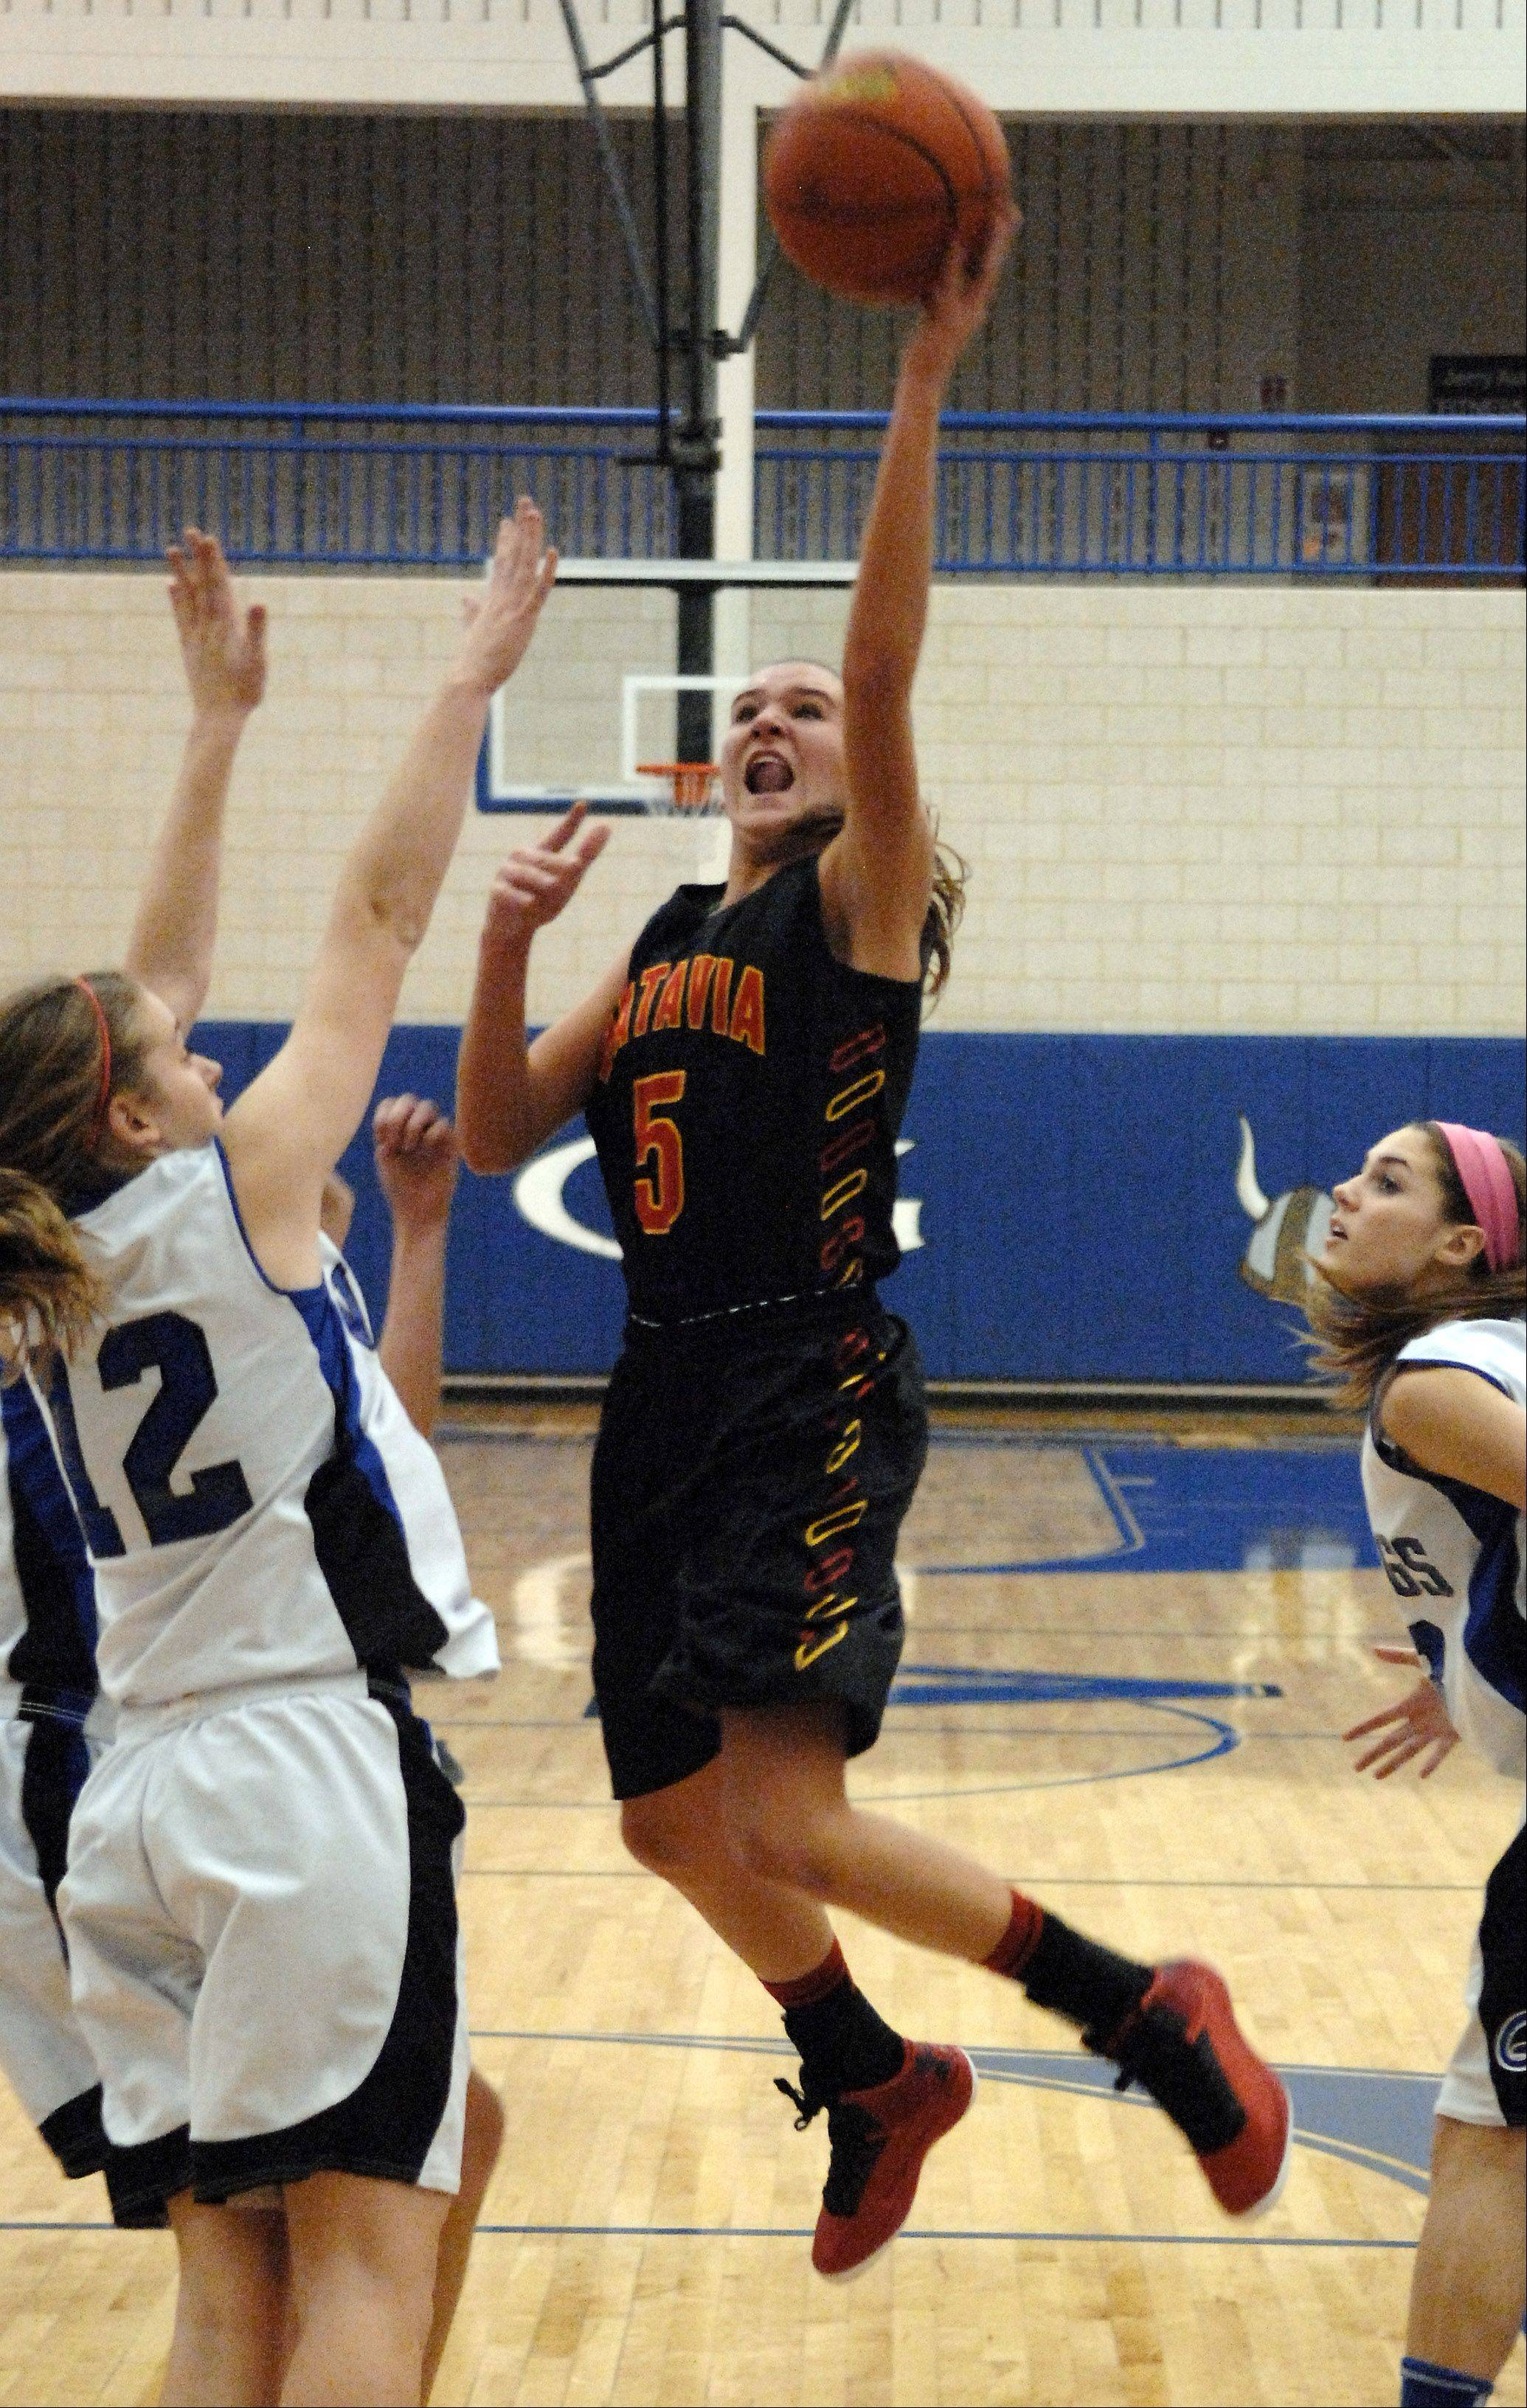 Batavia's Liza Fruendt drives to the basket against Geneva.